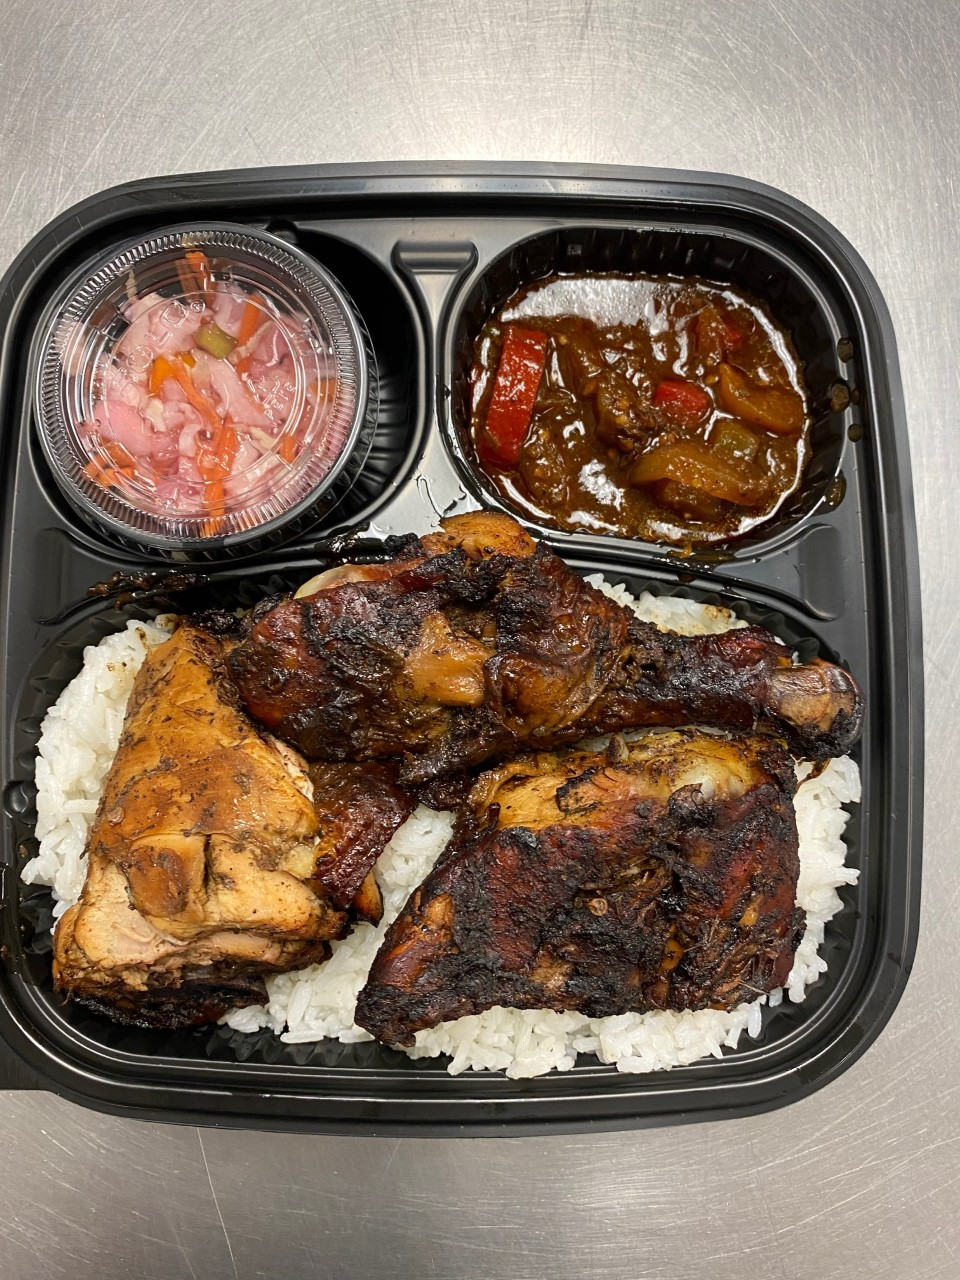 Jamaican Jerk Chicken A traditional Jamaican dish in which chicken is marinated with the jerk seasonings then grilled or cooked in the oven. Serve With Rice , cold Veggie Salad  $10.00